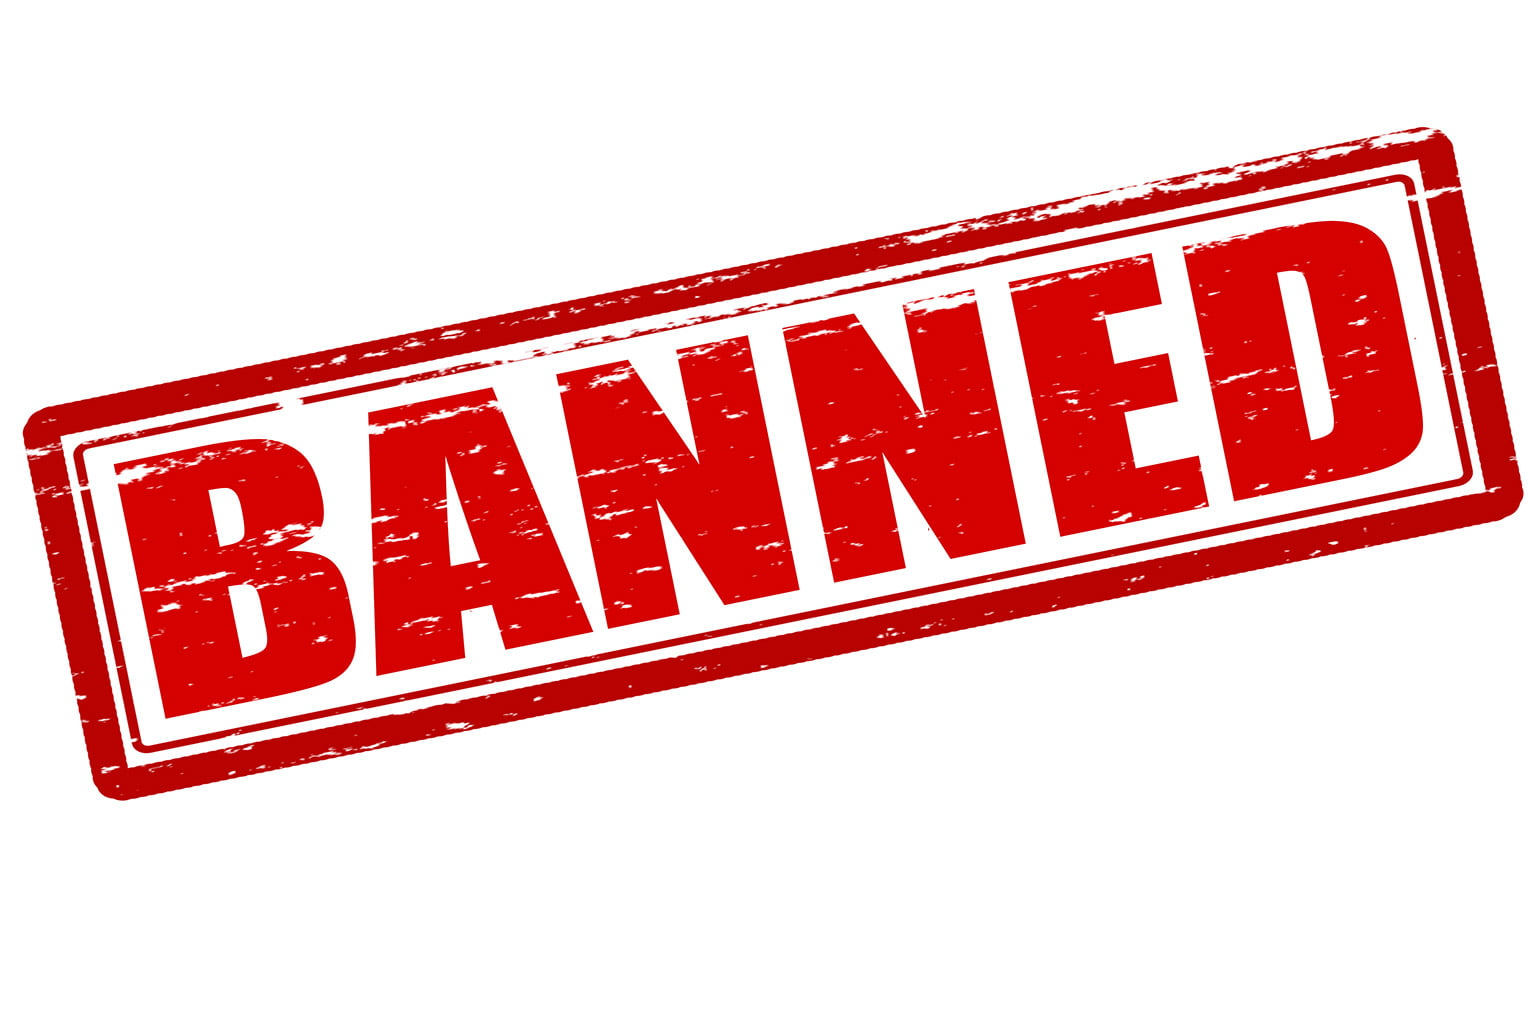 Banned For Life >> Debt management directors disqualified - BestAdvice